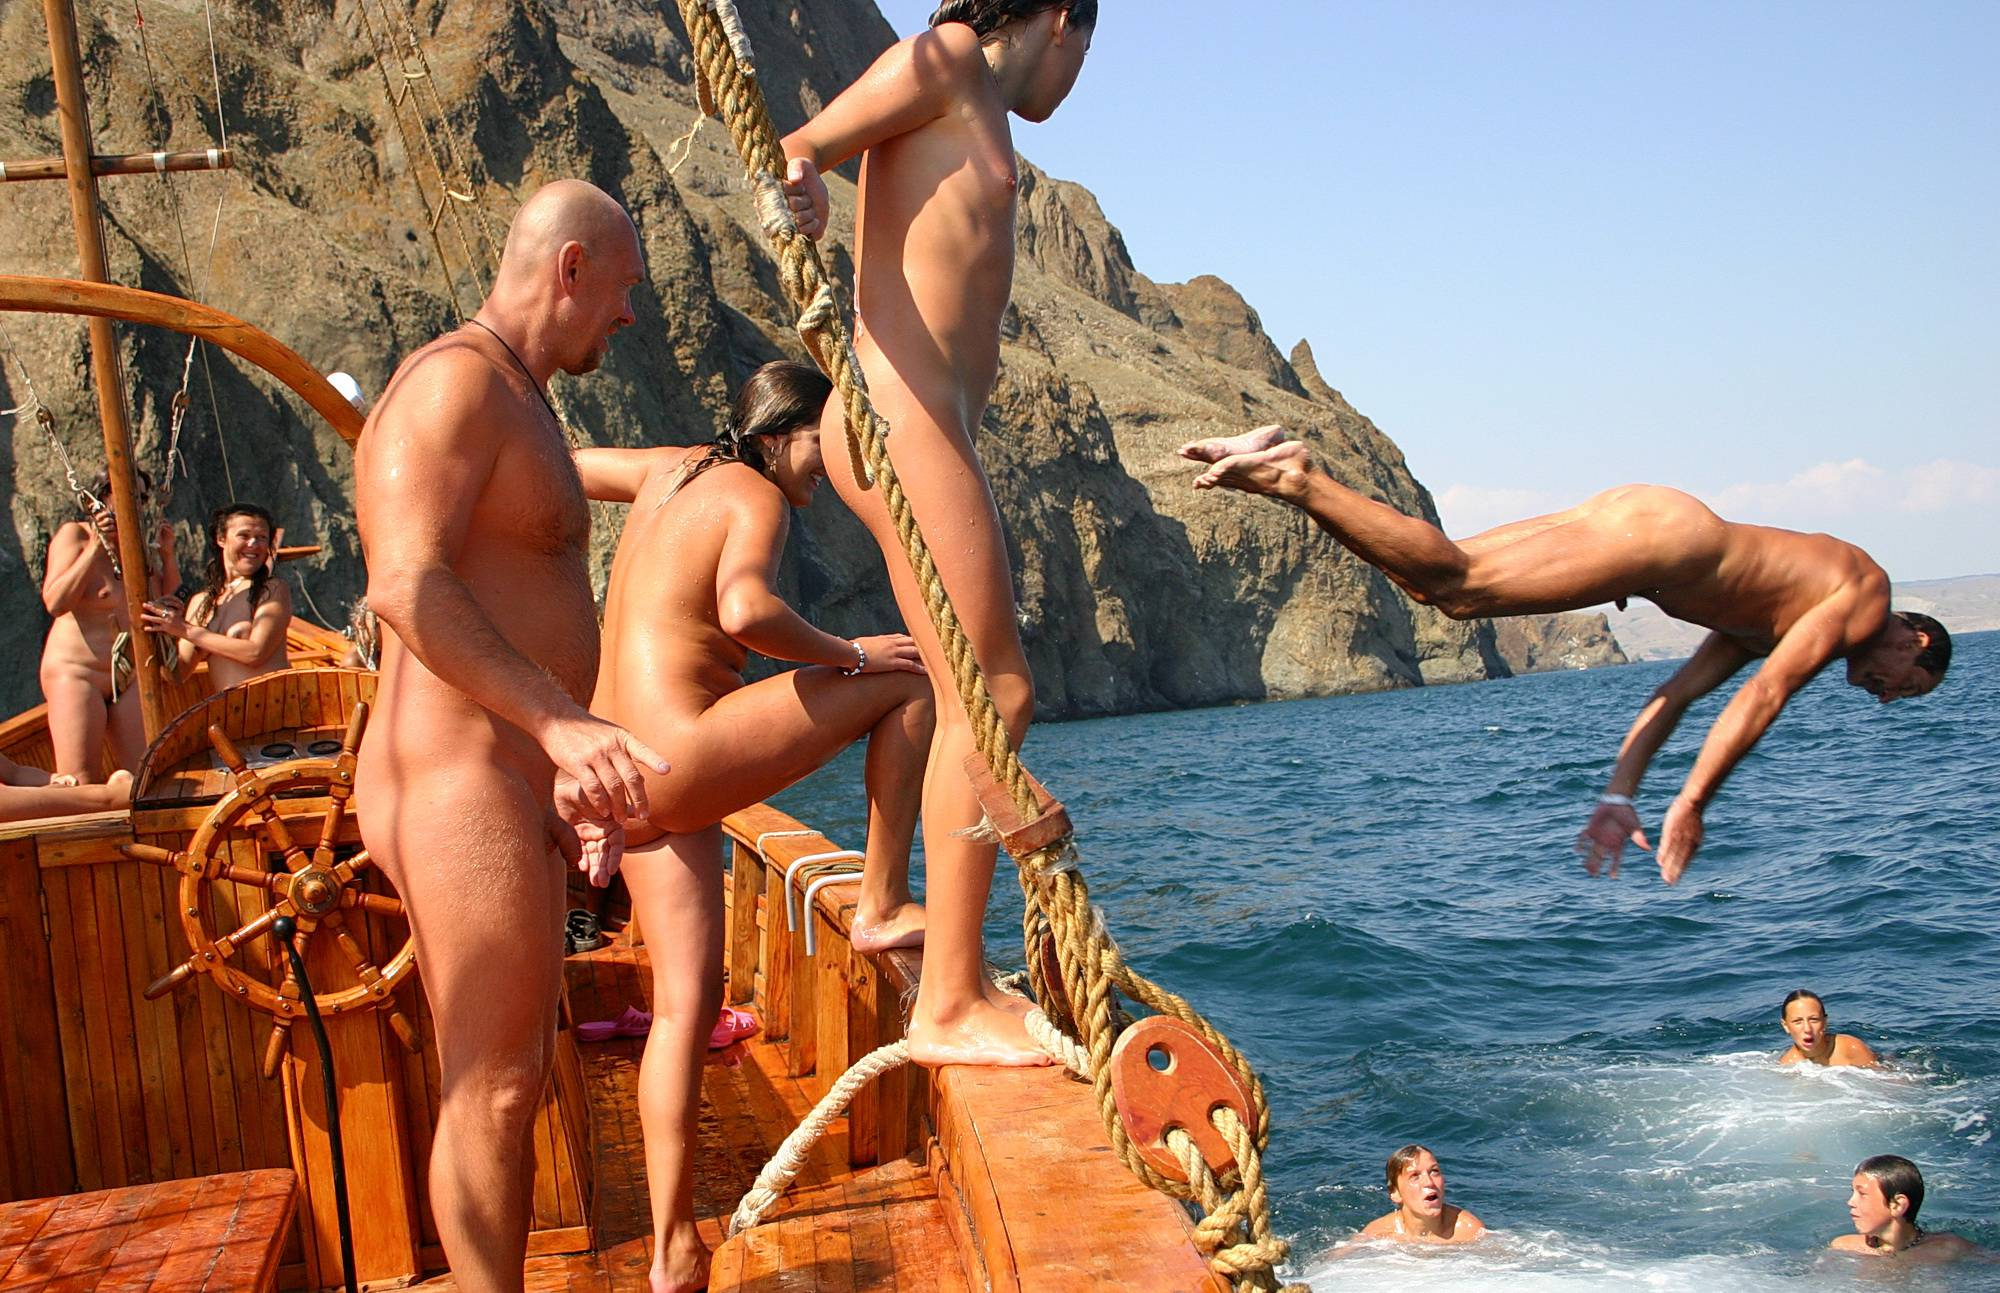 Pure Nudism Images Ukrainian Sea Boating Two - 1